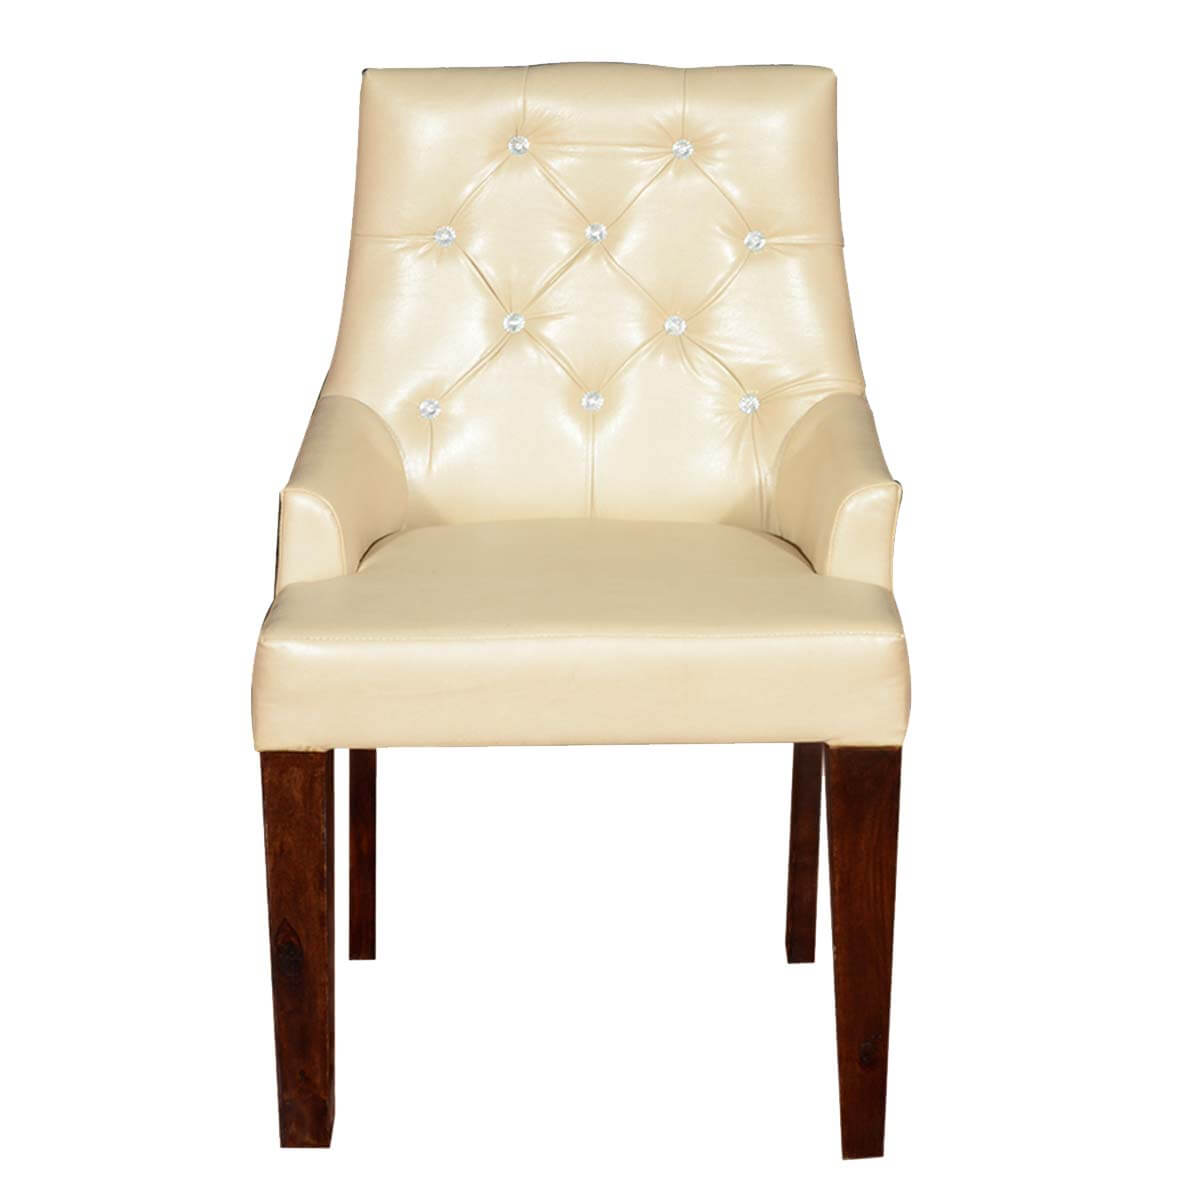 white upholstered chairs party chair covers near me contemporary leather solid wood